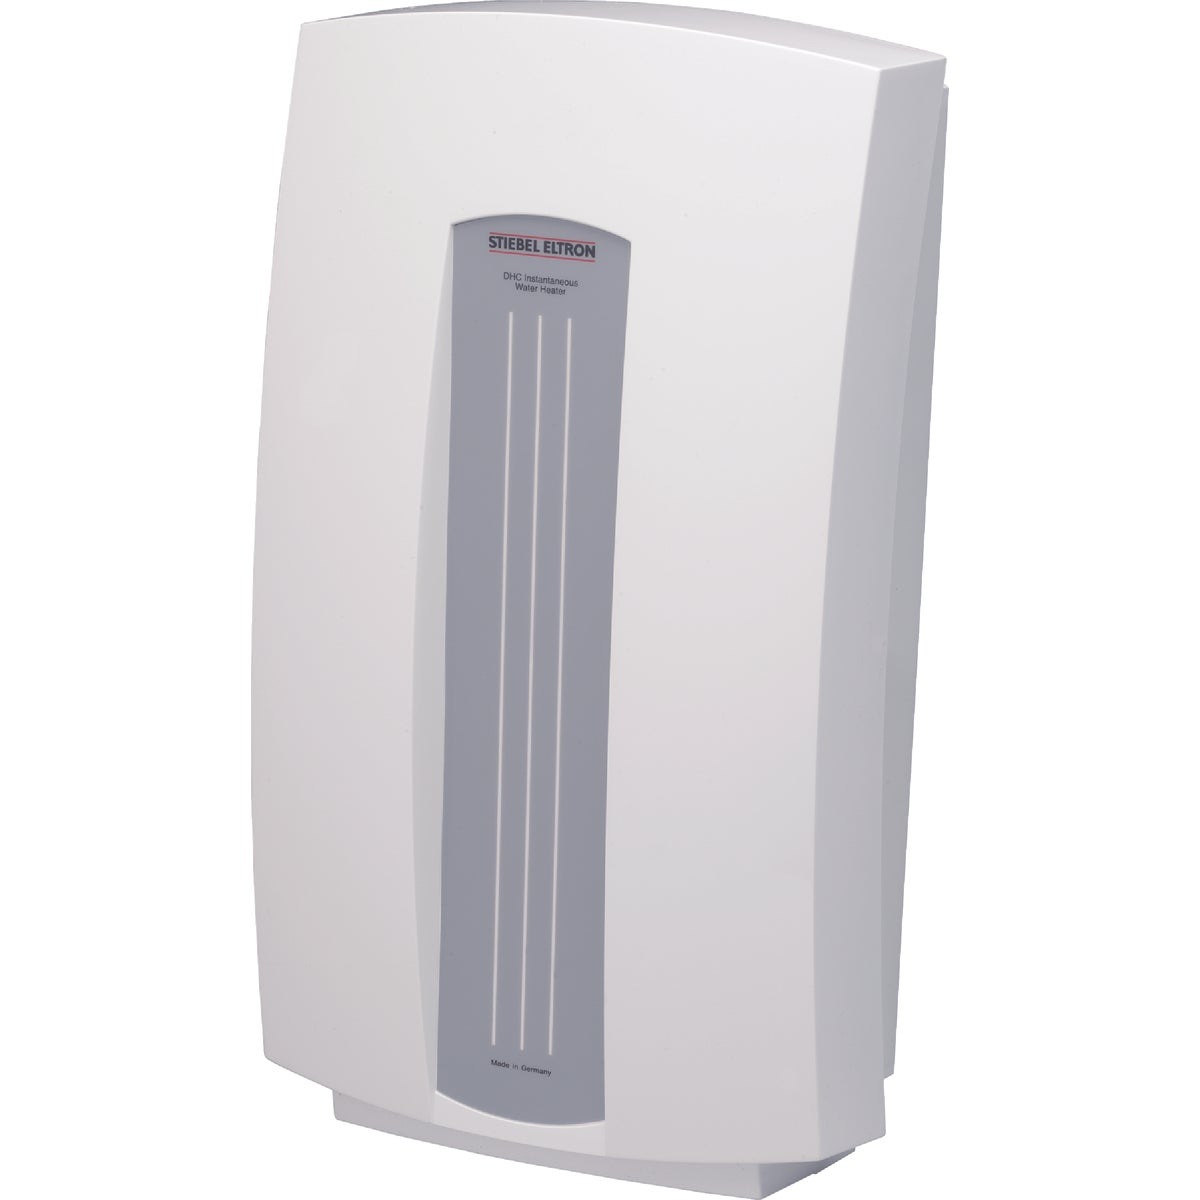 INSTANT WATER HEATER - AE-9.5 by Bosch Water Heating